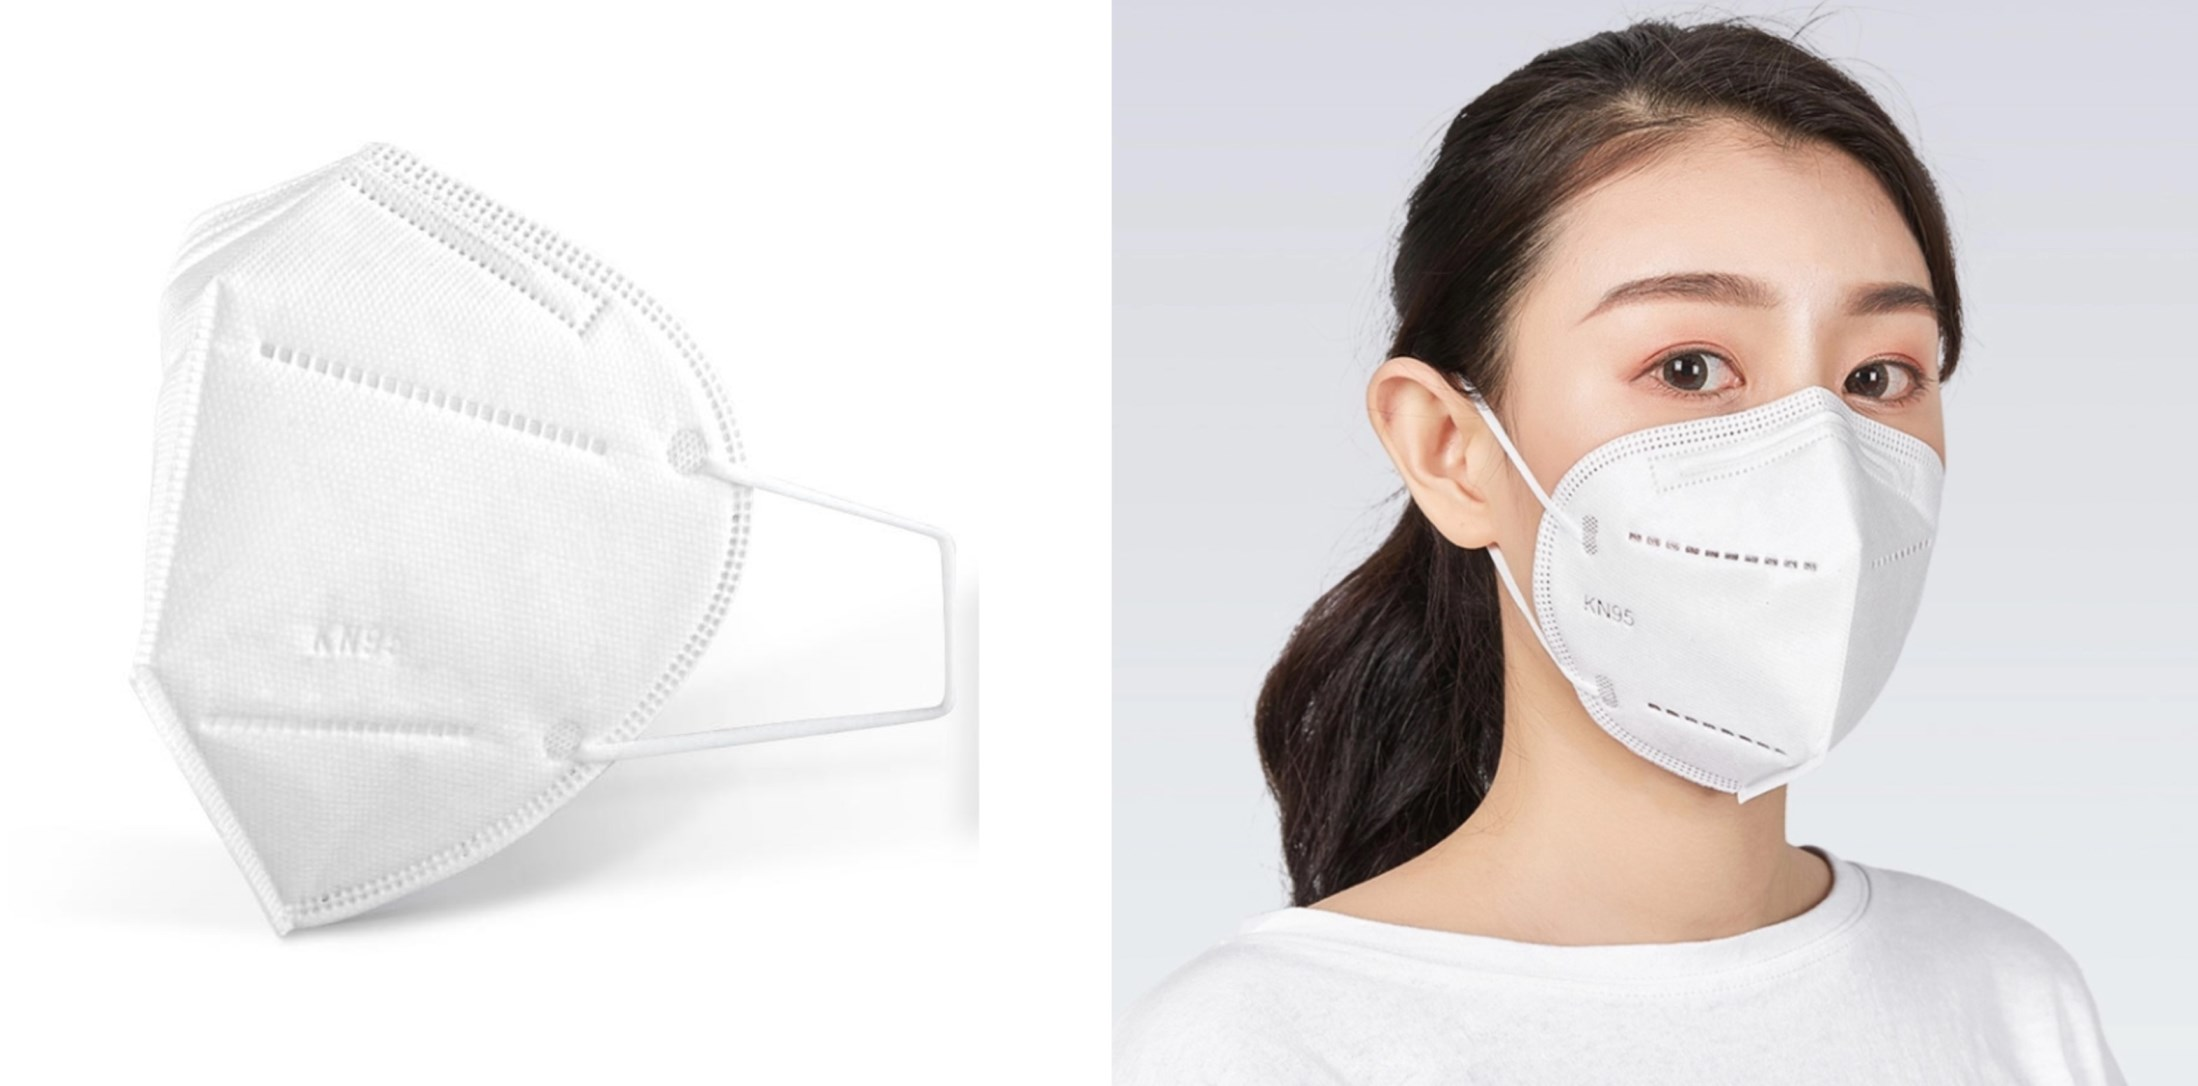 noziroh protective mask kn95 surgical masks elastic earloop face protection disposable